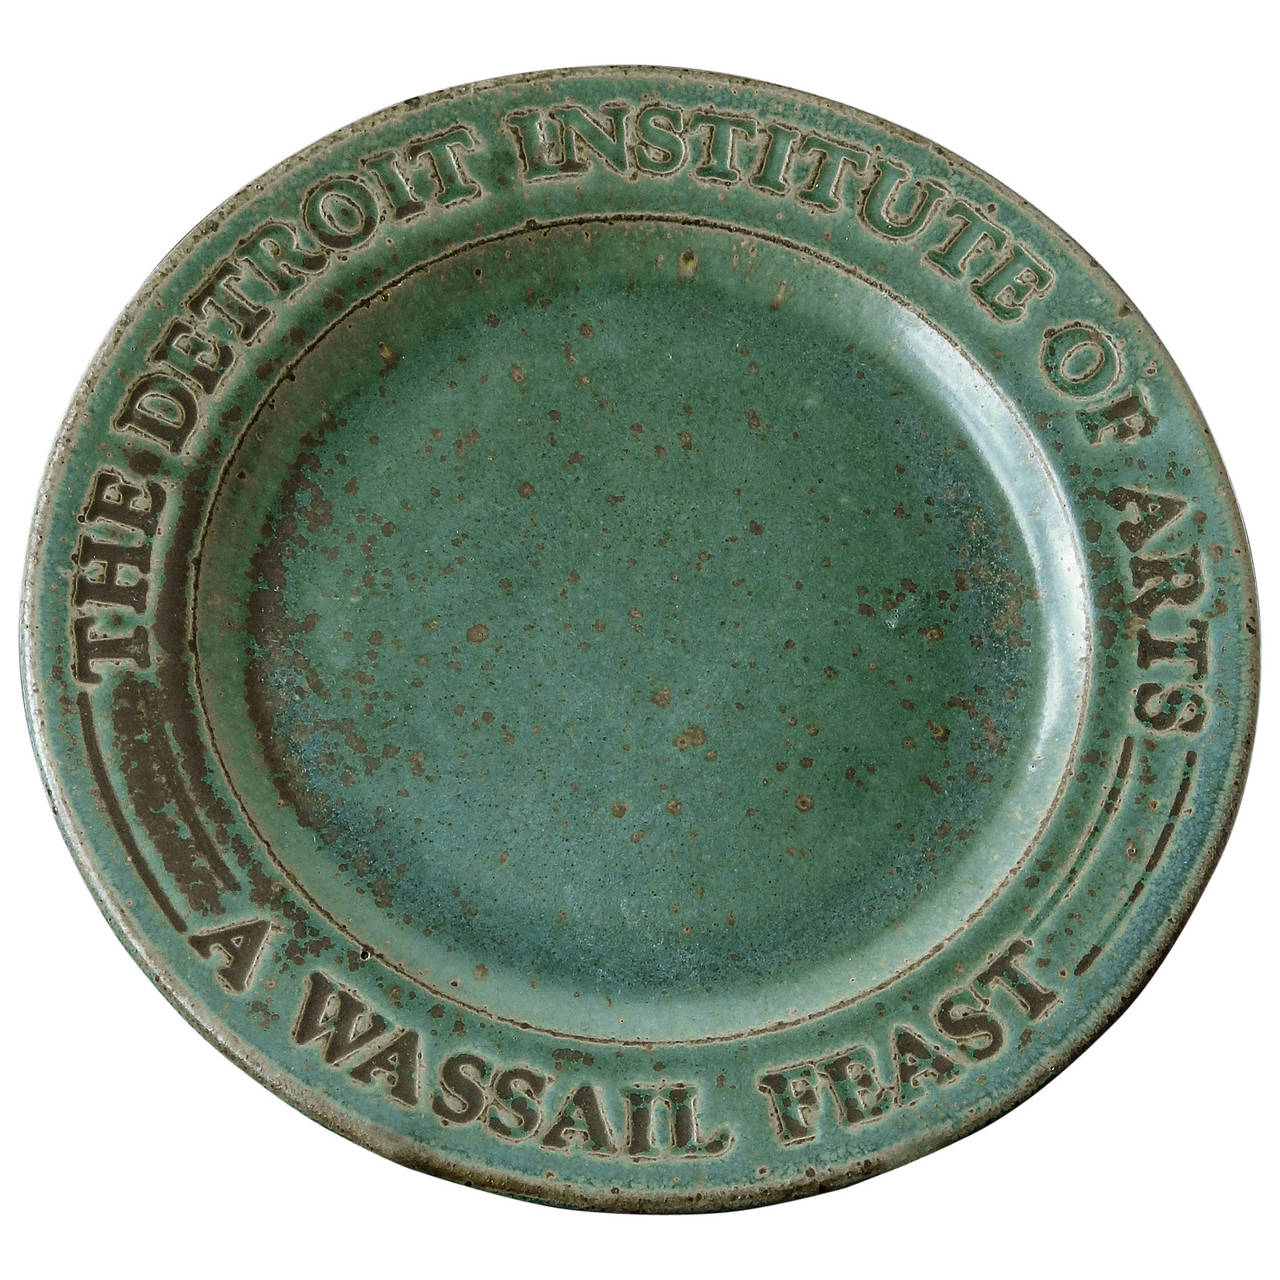 """""""Wassail Feast"""" Charger by Pewabic for Detroit Institute of Arts, 1982 For Sale"""